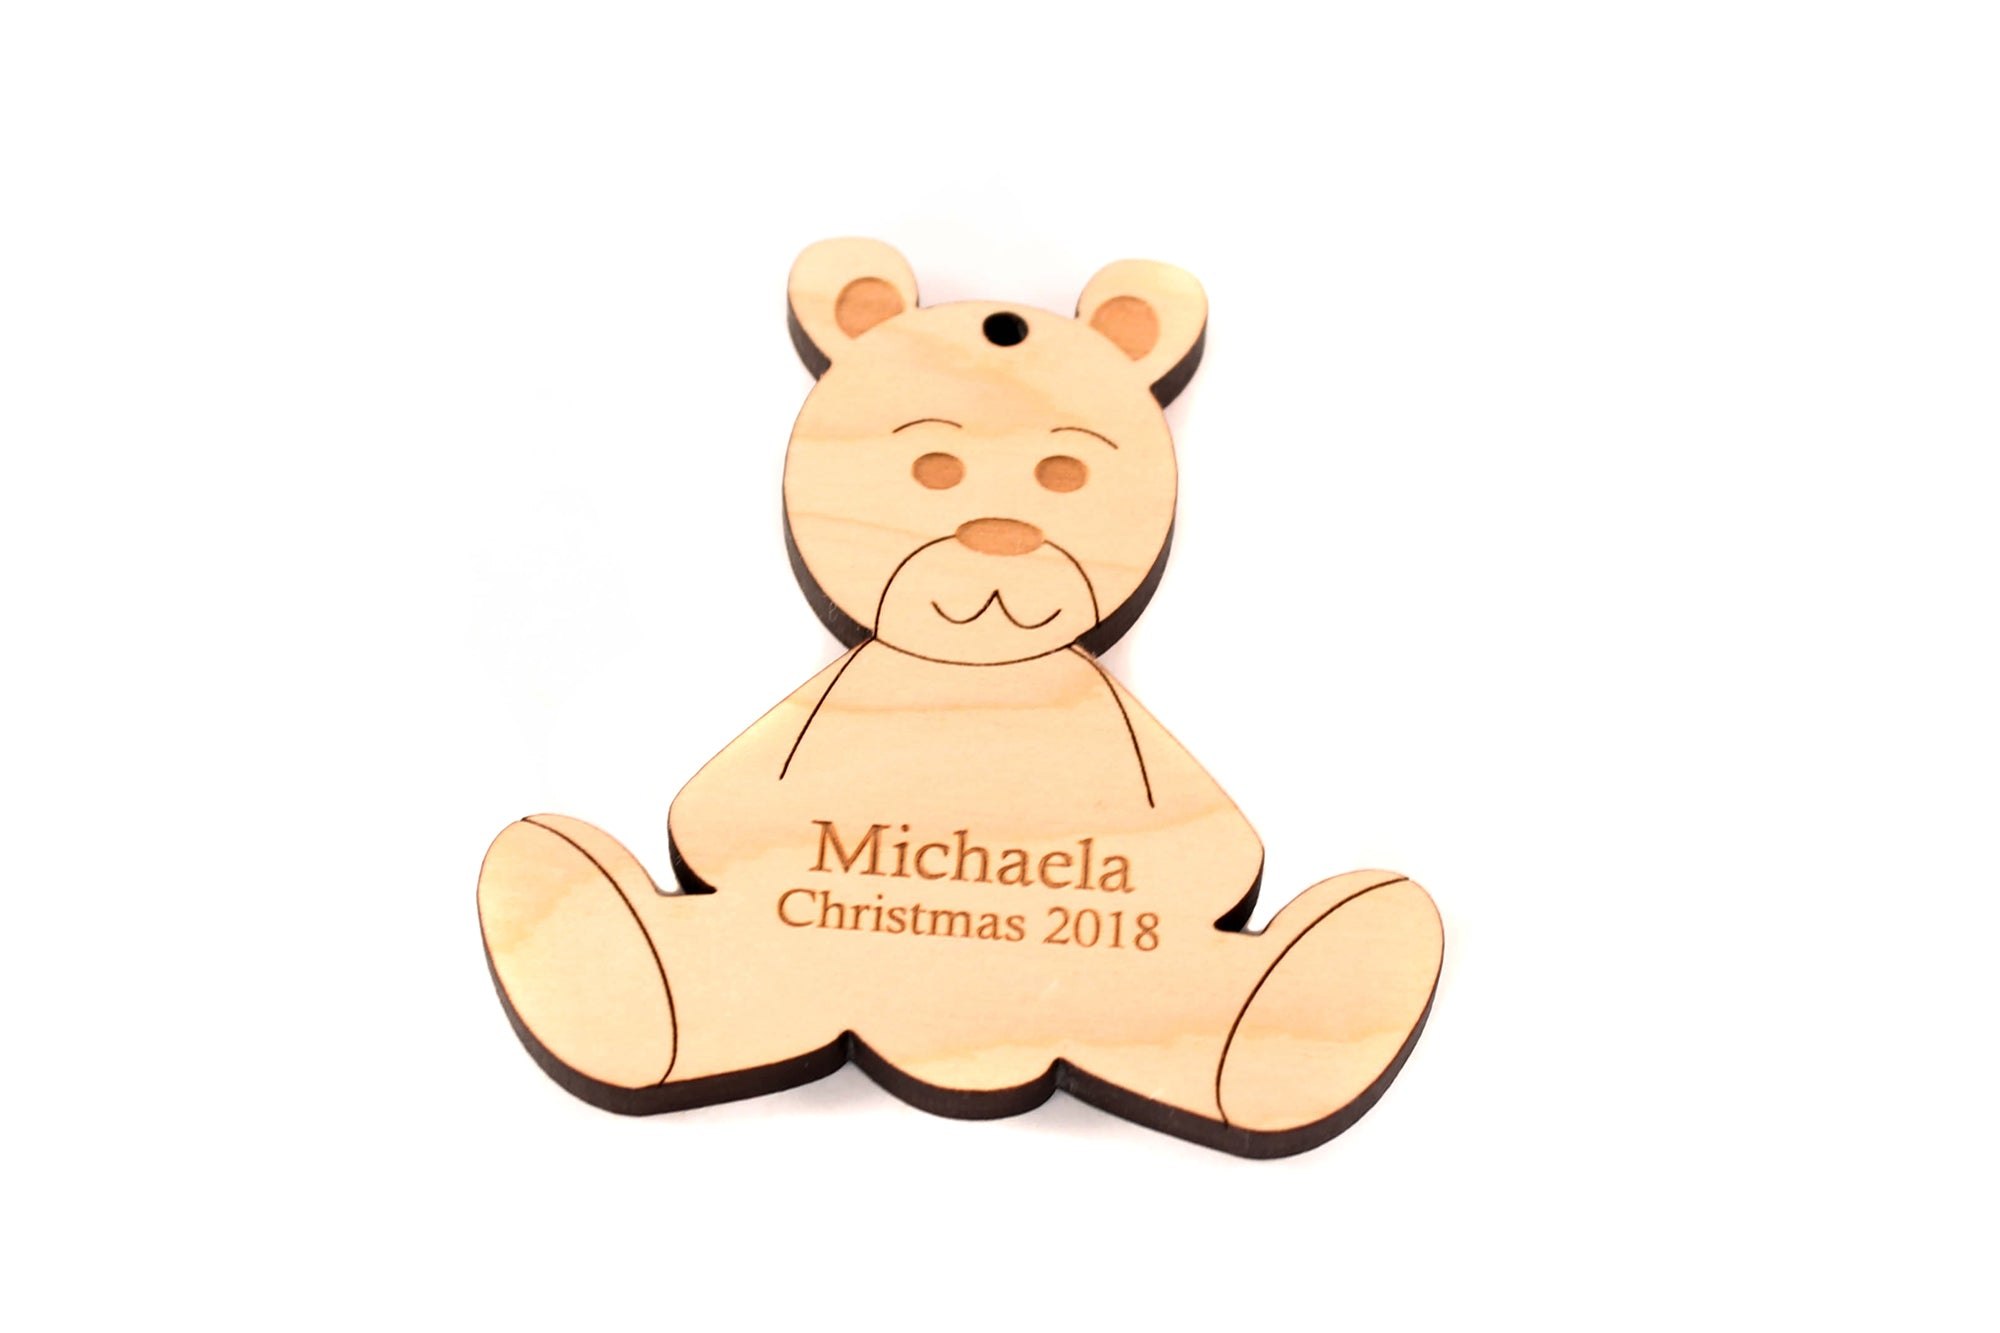 personalized holiday ornaments Smiling Tree Toys